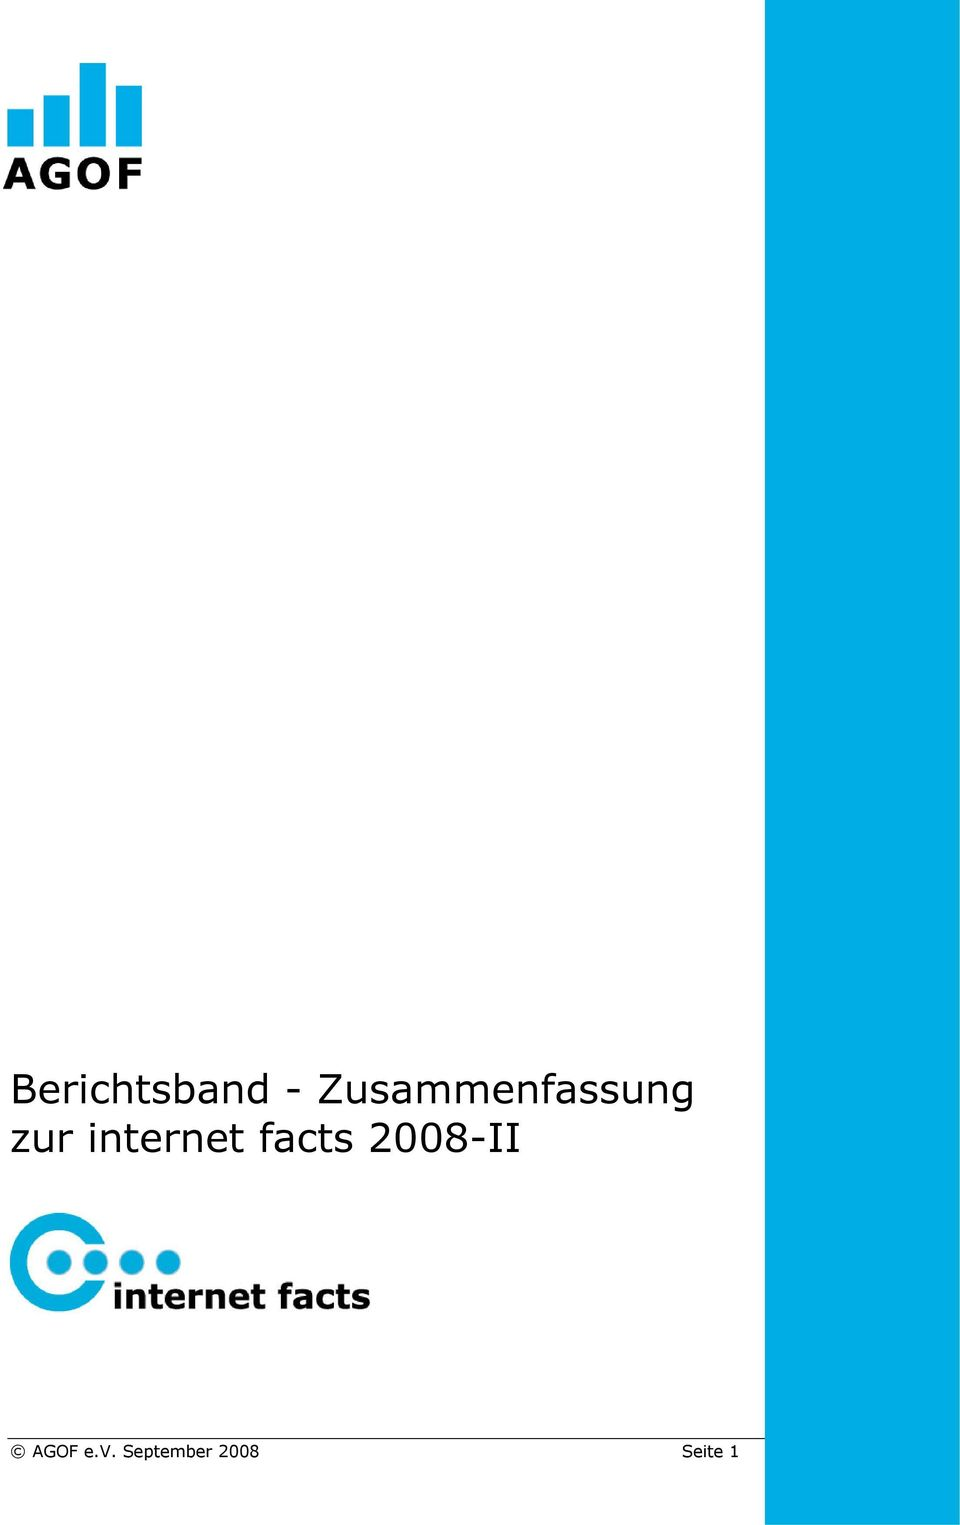 internet facts 2008-II